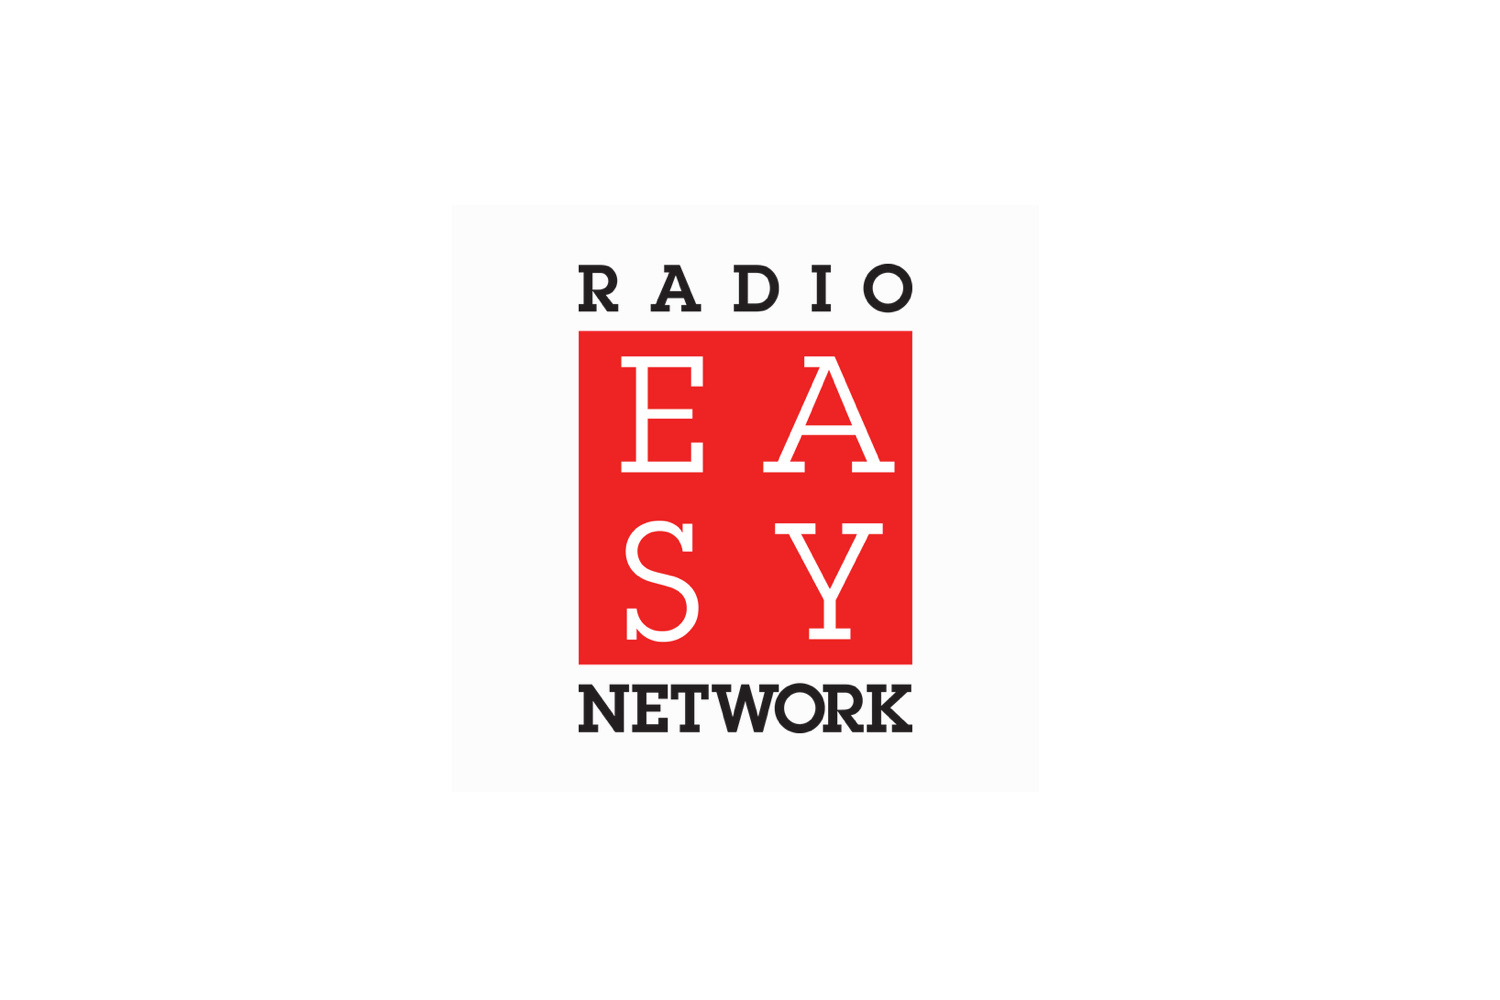 Radio-easynetwork